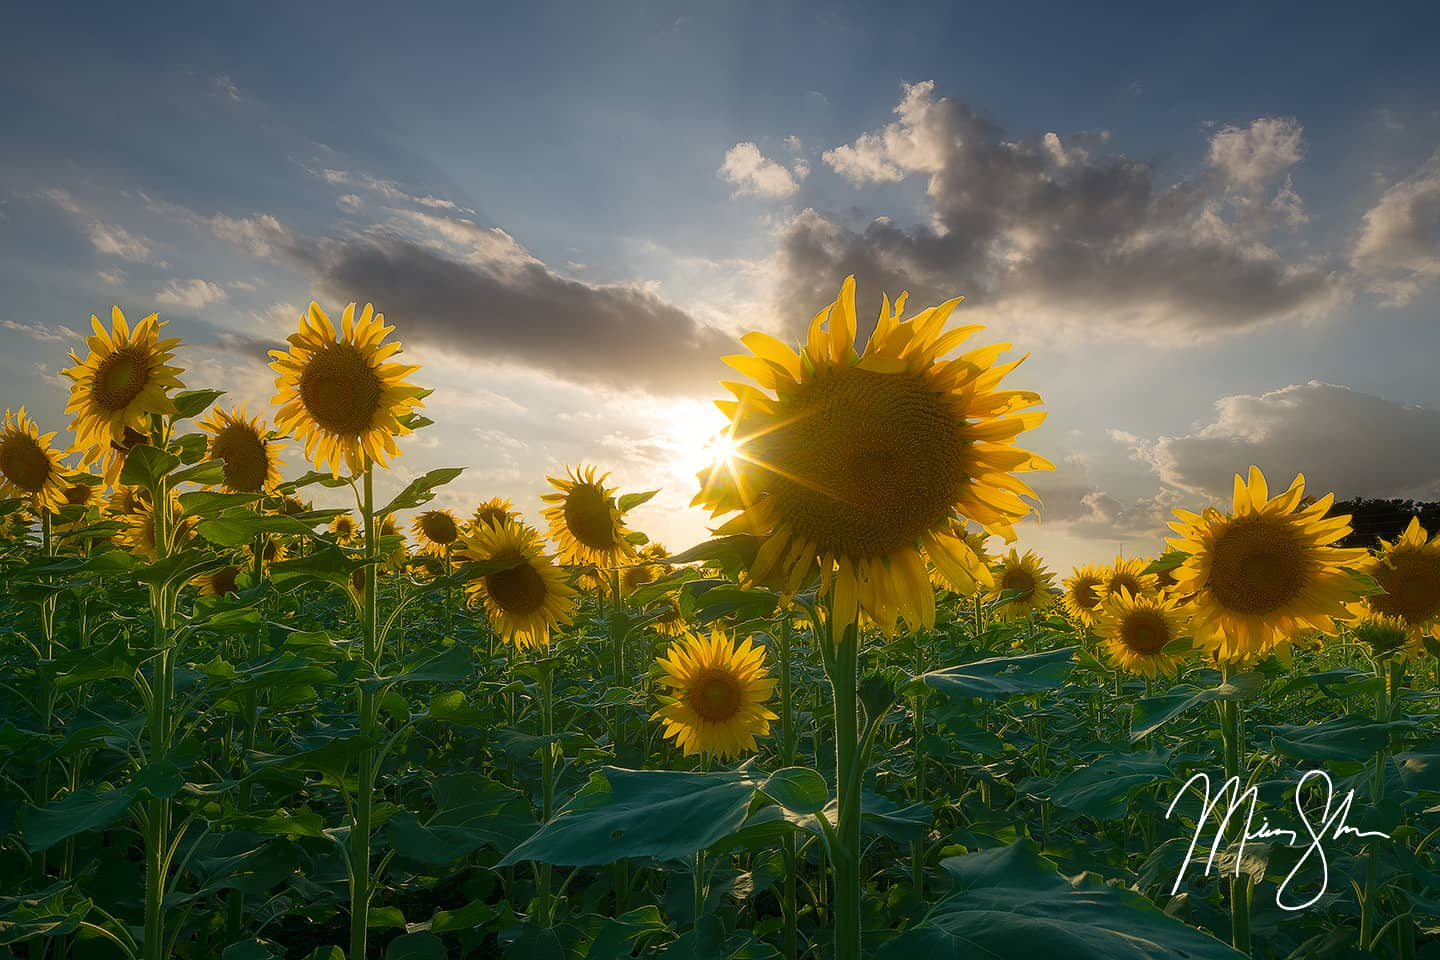 Sunburst Sunflowers - Haysville, KS